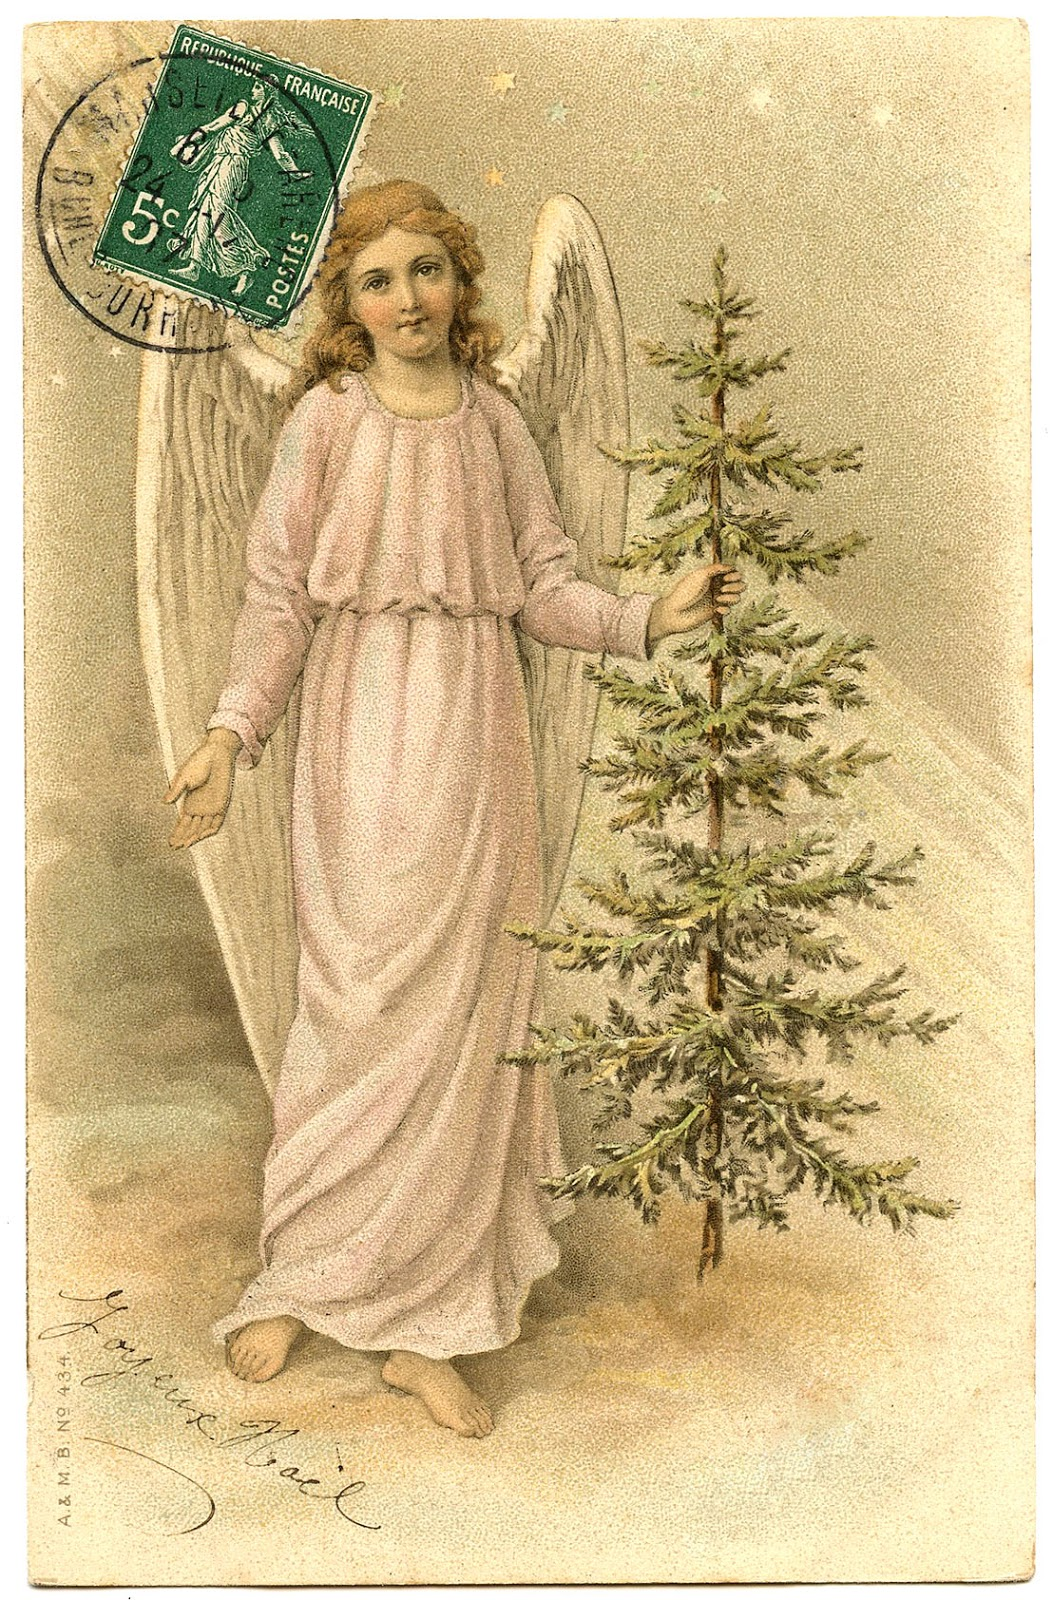 Vintage Image - Lovely French Angel with Tree - The Graphics Fairy